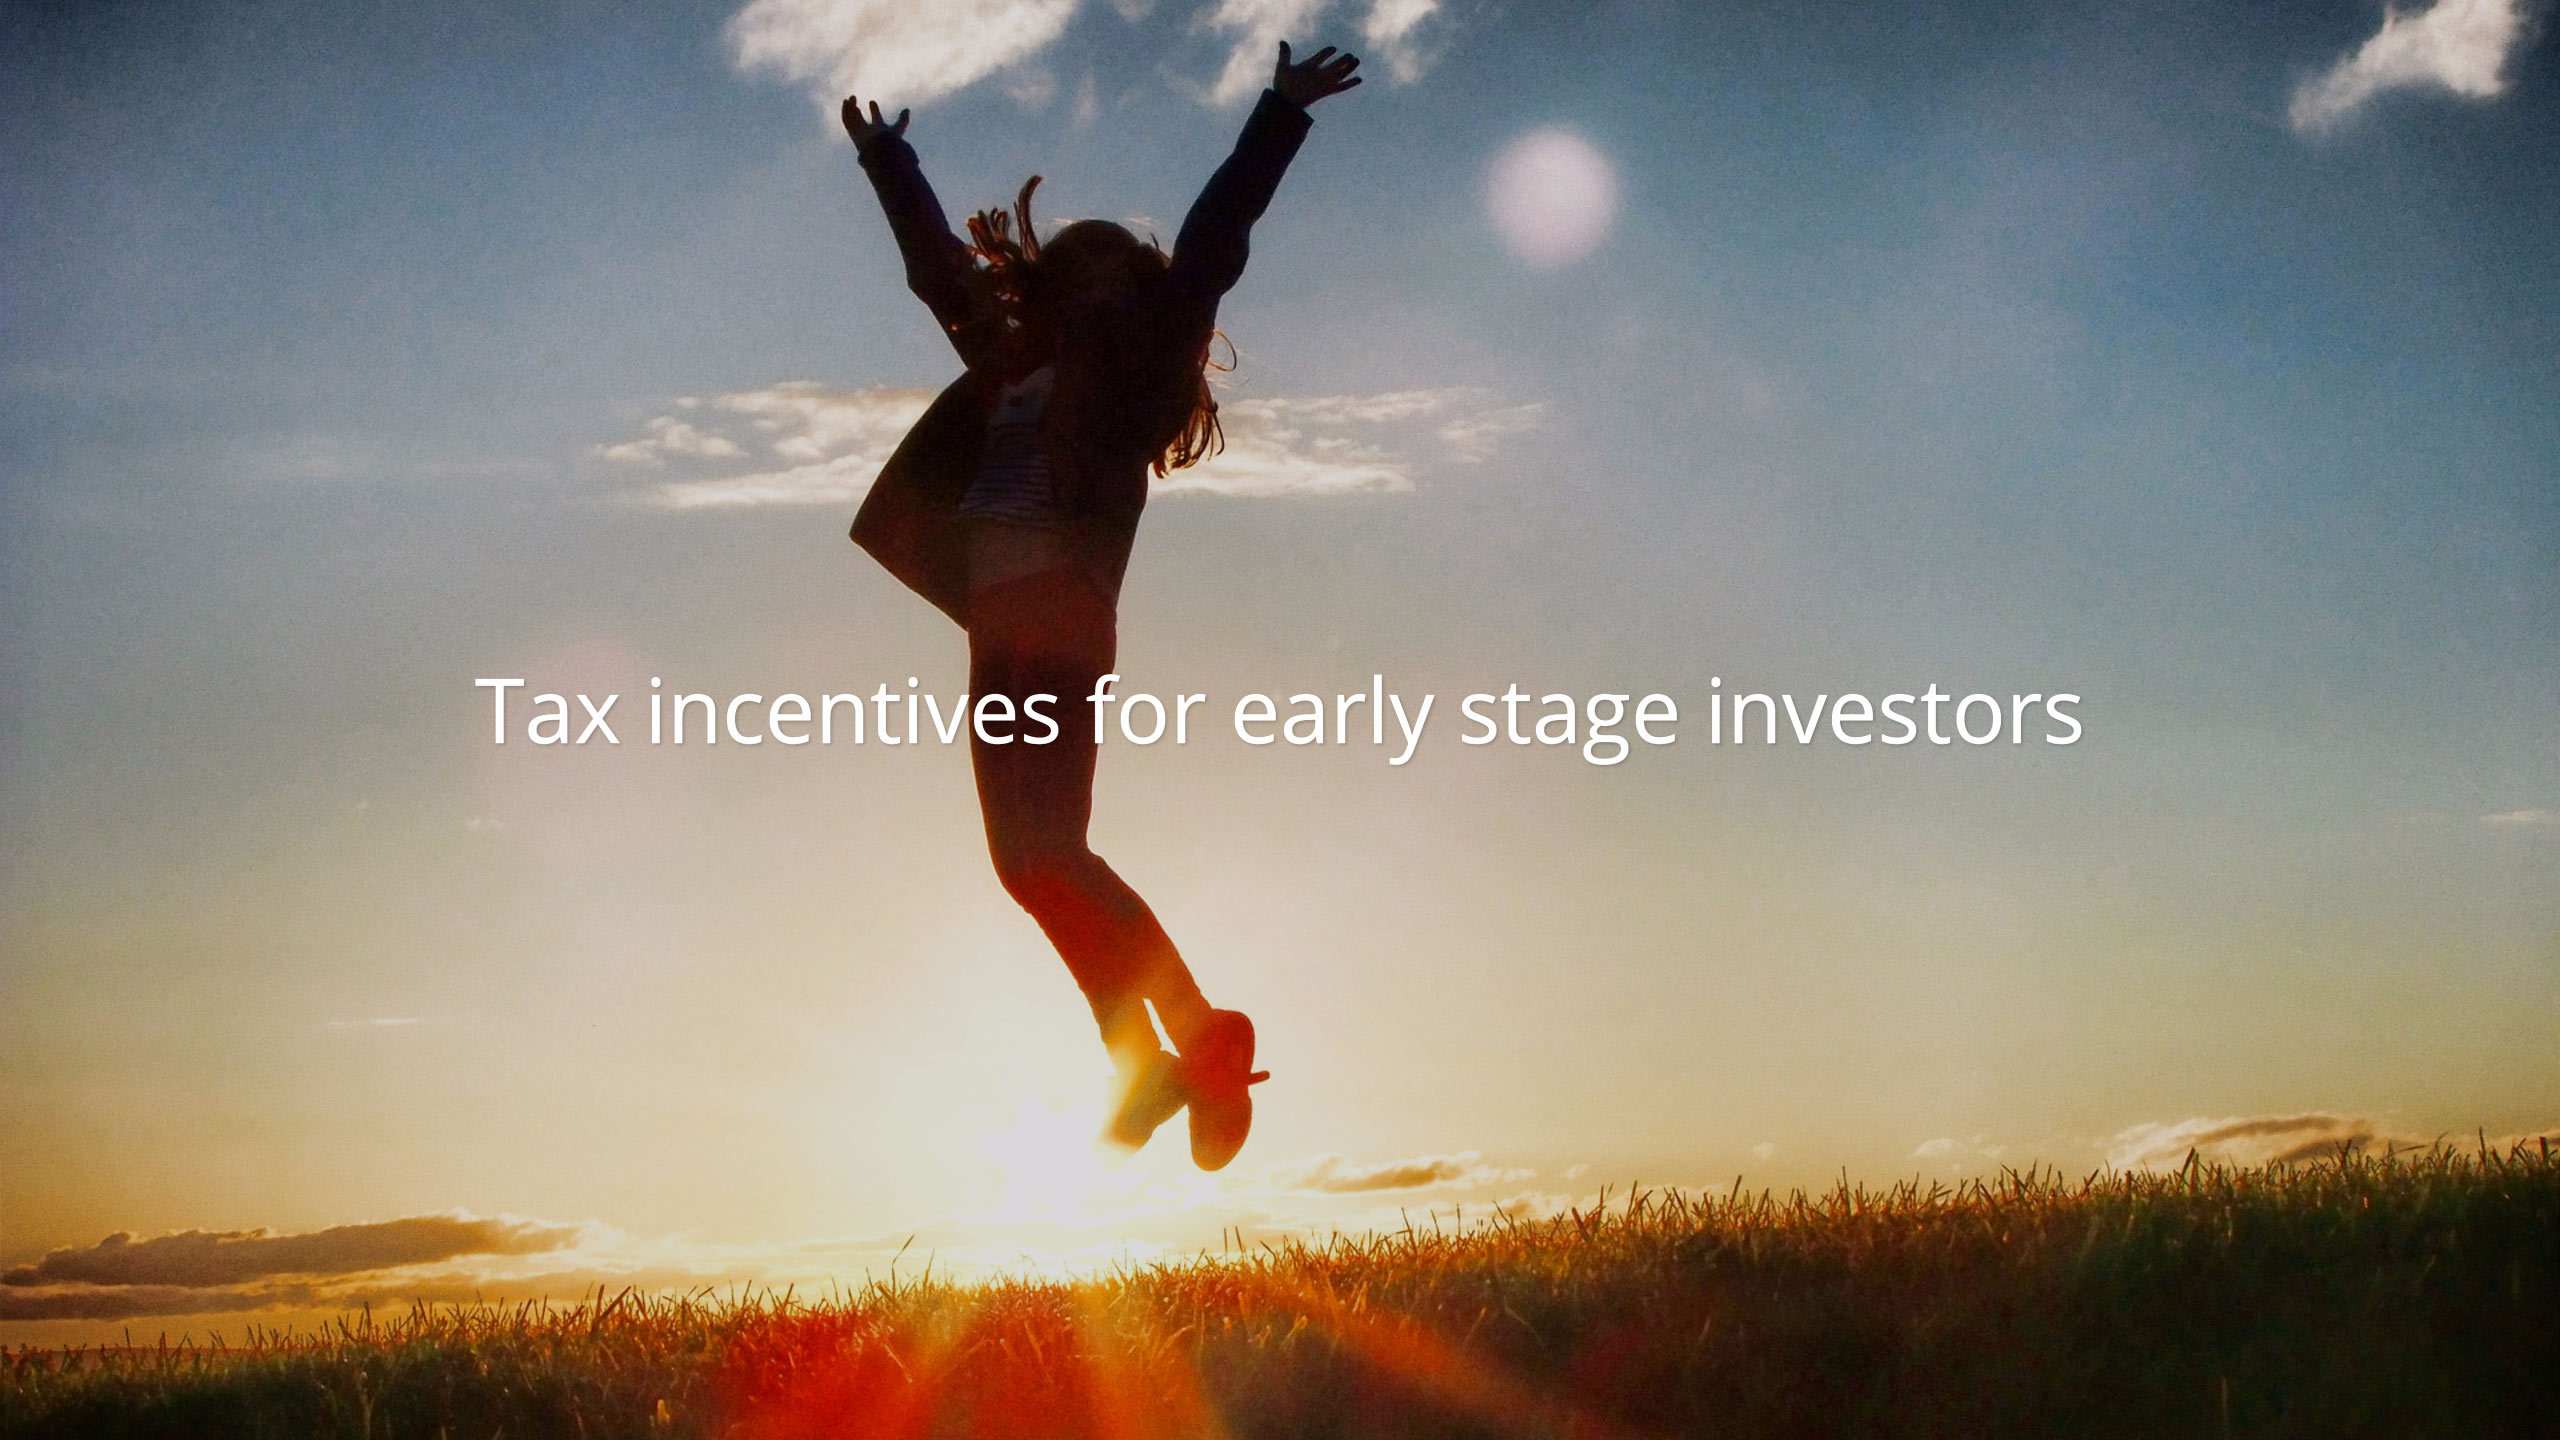 Tax incentives for early stage investors